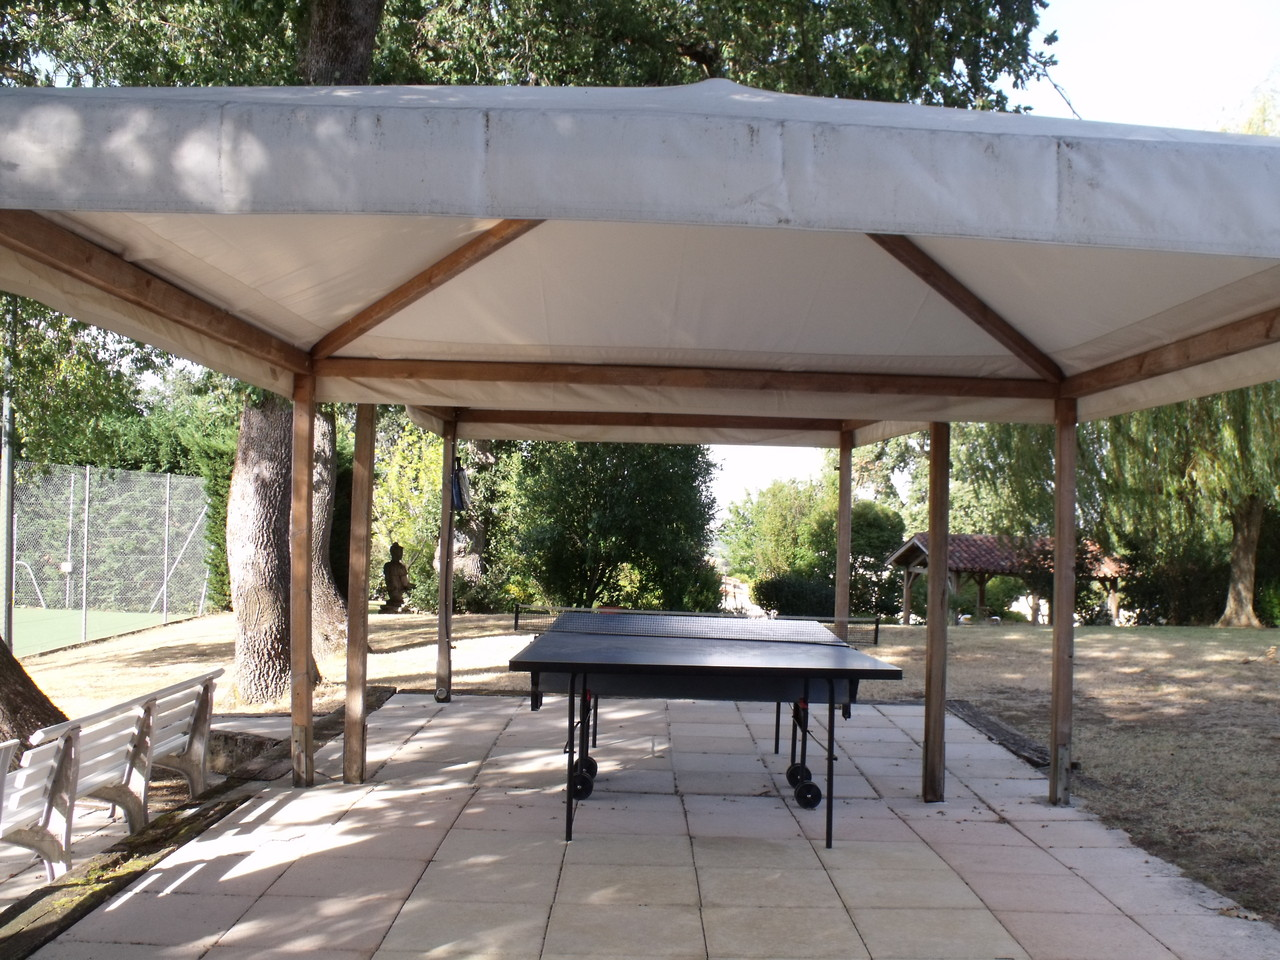 Table de ping-pong sous auvent